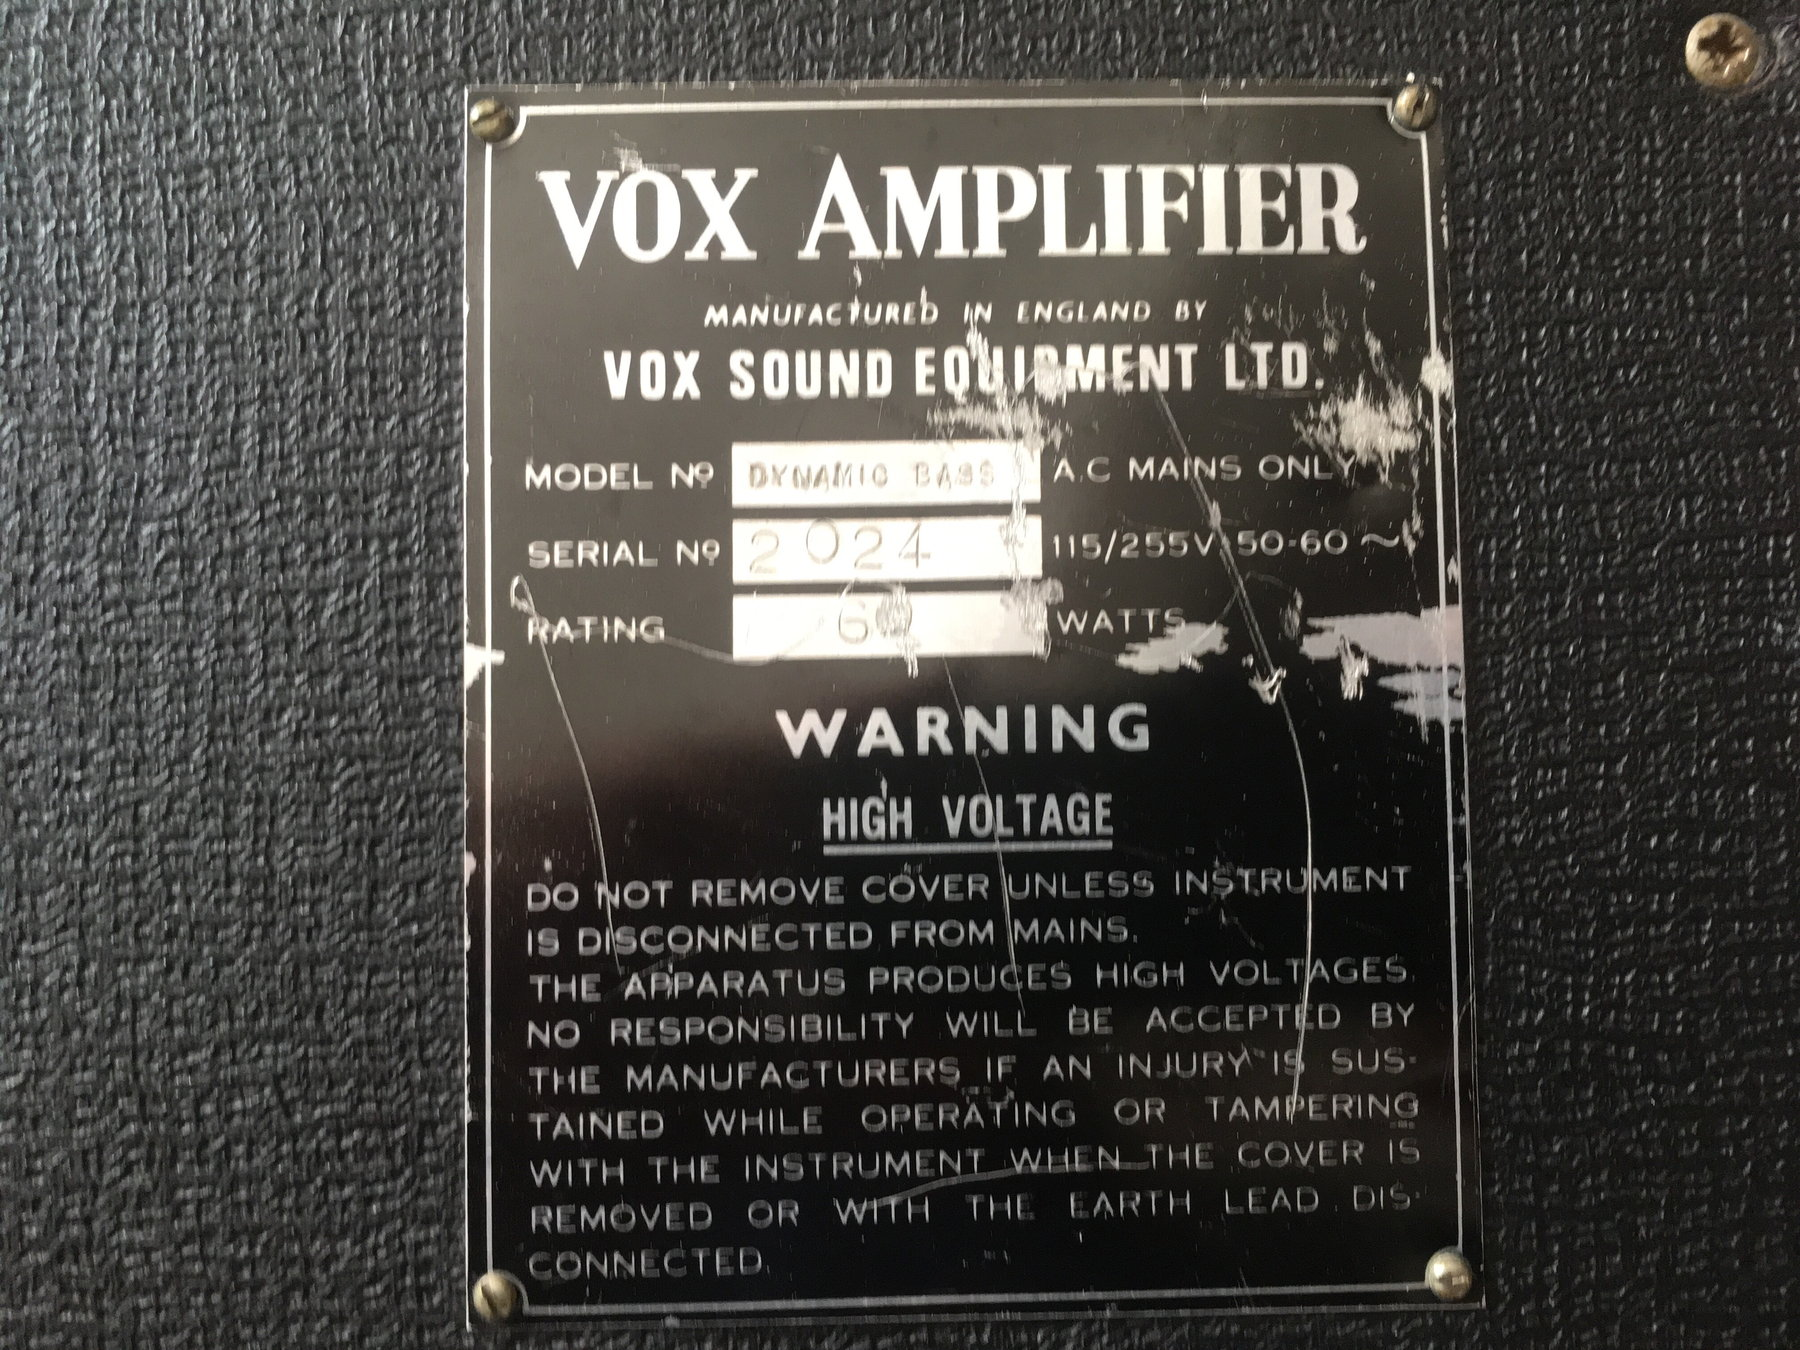 Vox Dynamic Bass, serial number 2024, early VSEL